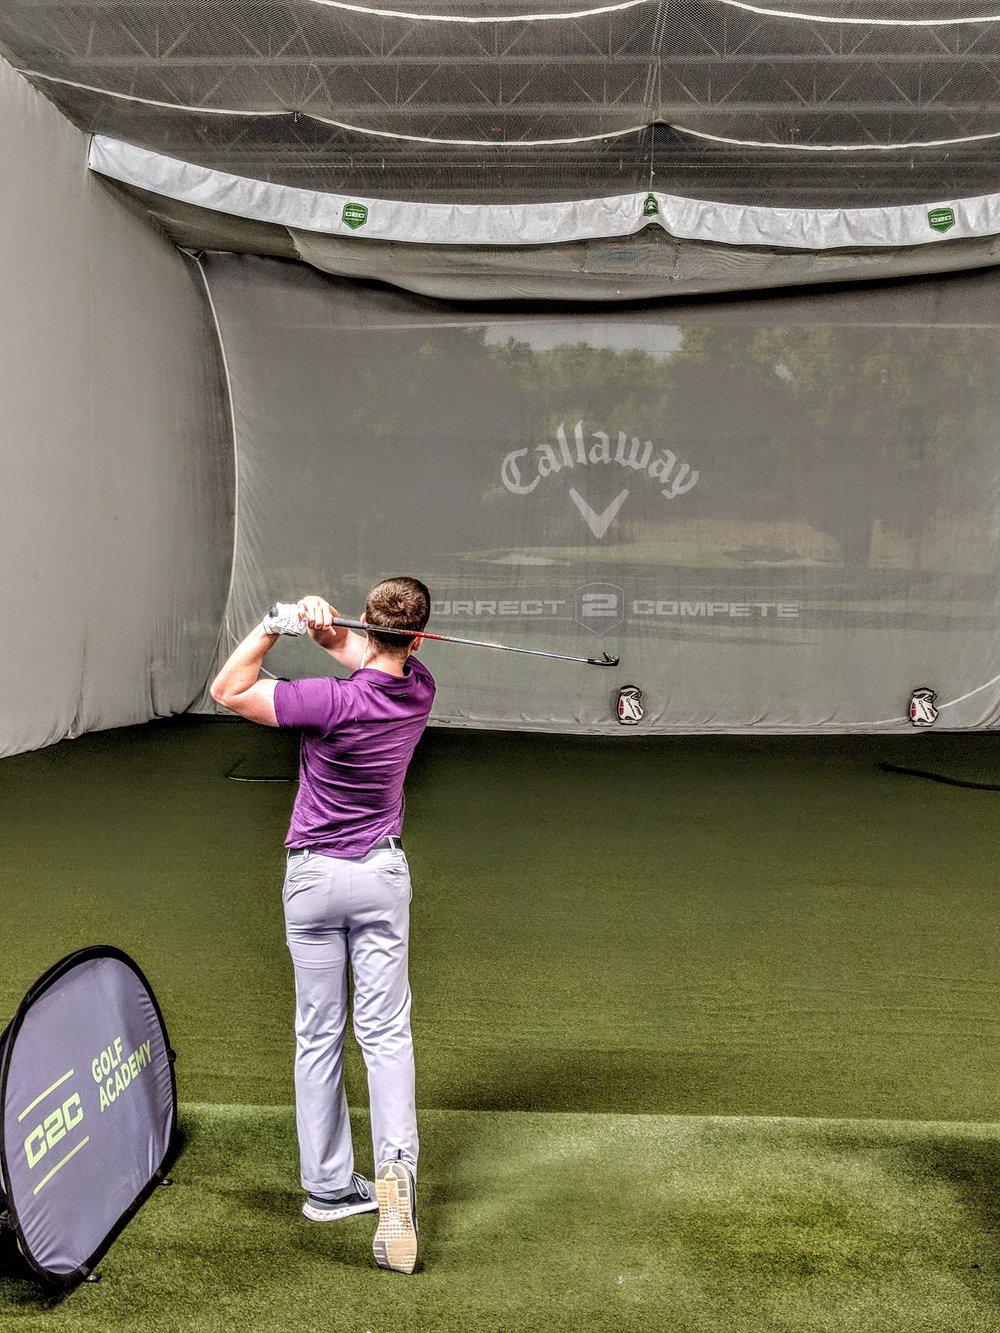 Golf Evaluation  - 1.  Golf Specific EvaluationA fun and challenging series of movements and drills designed to show strengths and expose weaknesses.2.  Let Us Design Your Personalized ProgramA C2C coach will design a program specific to you based upon the results of your evaluation and personal goals.3.  Follow Your ProgramFollow your program consistently with guidance by a C2C coach.4.  Enjoy Your ResultsSee the hard work pay off when it matters most!